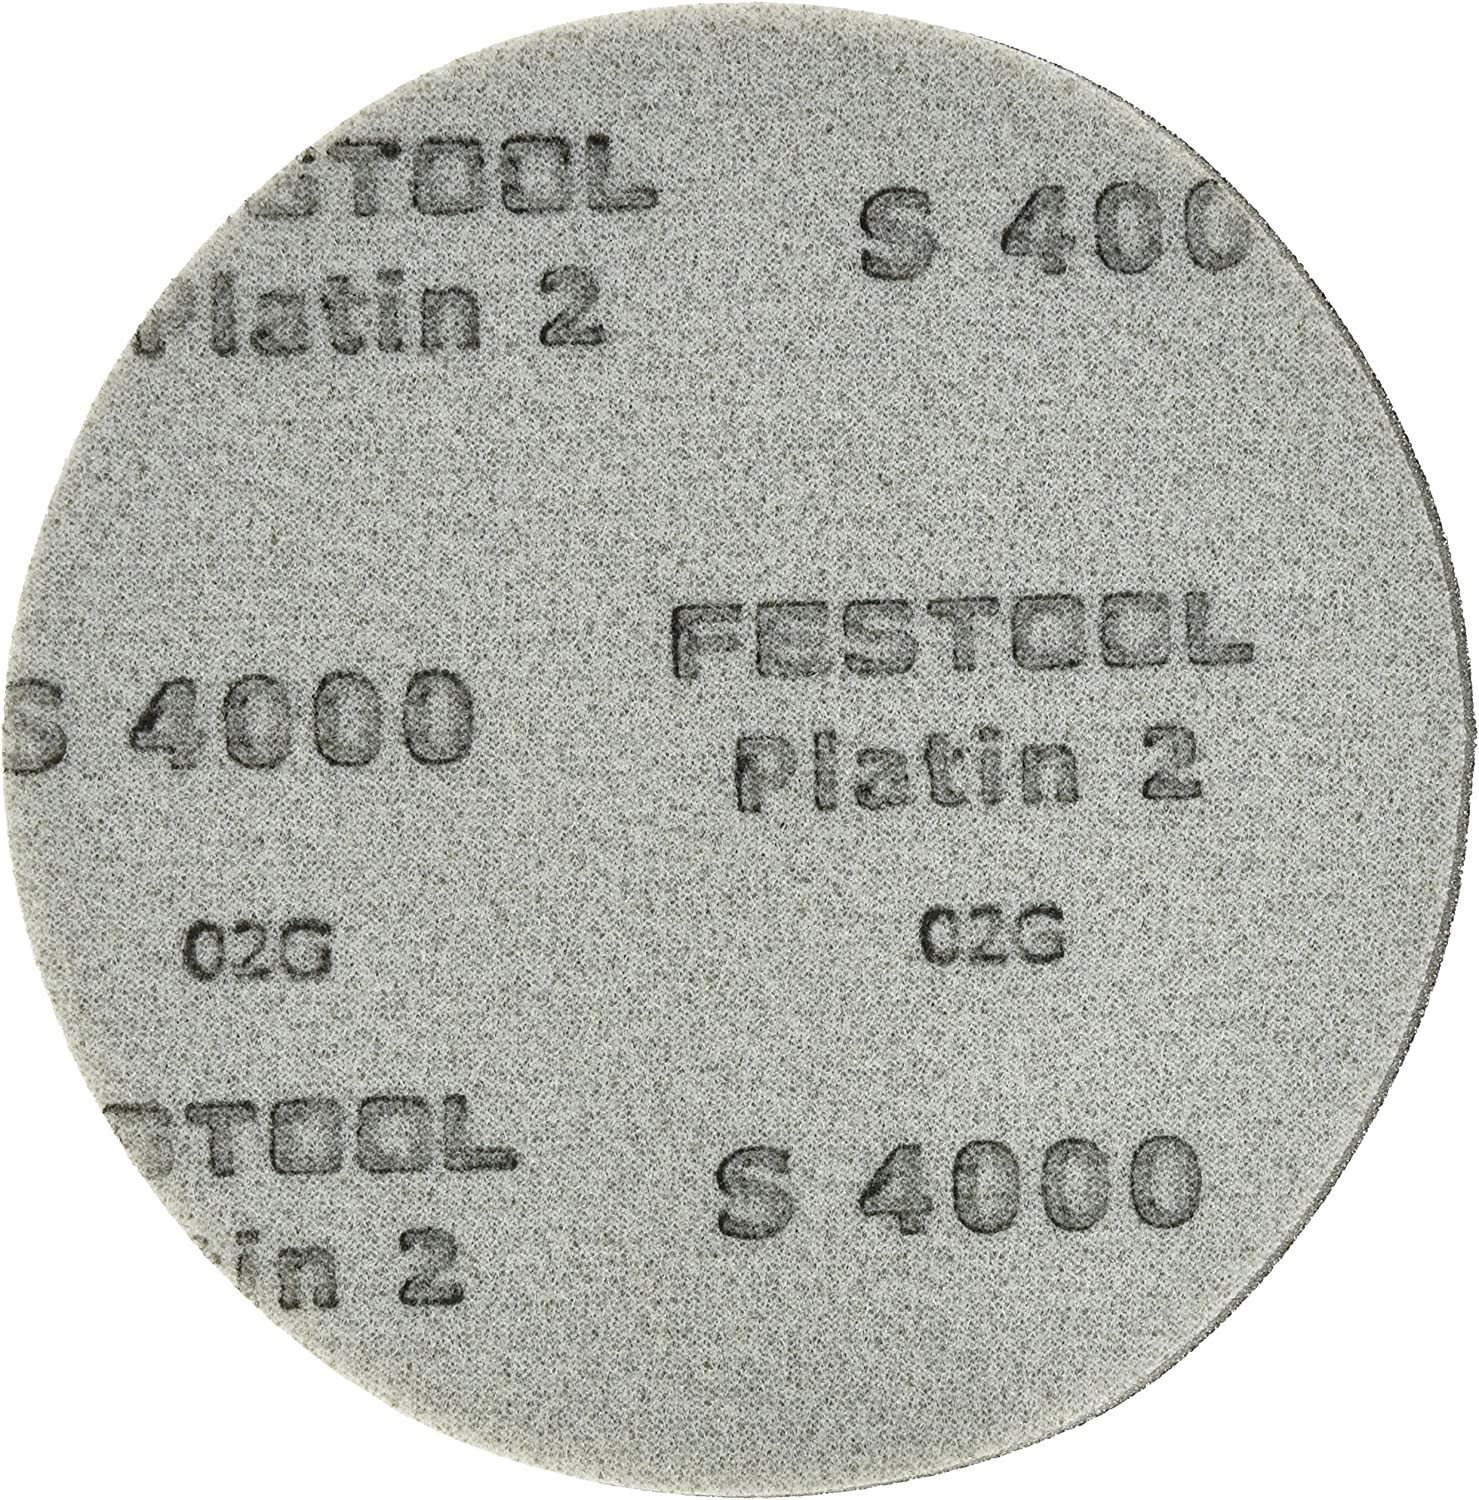 Festool 492376 S2000 Grit Platin 2 Abrasives Pack of 15